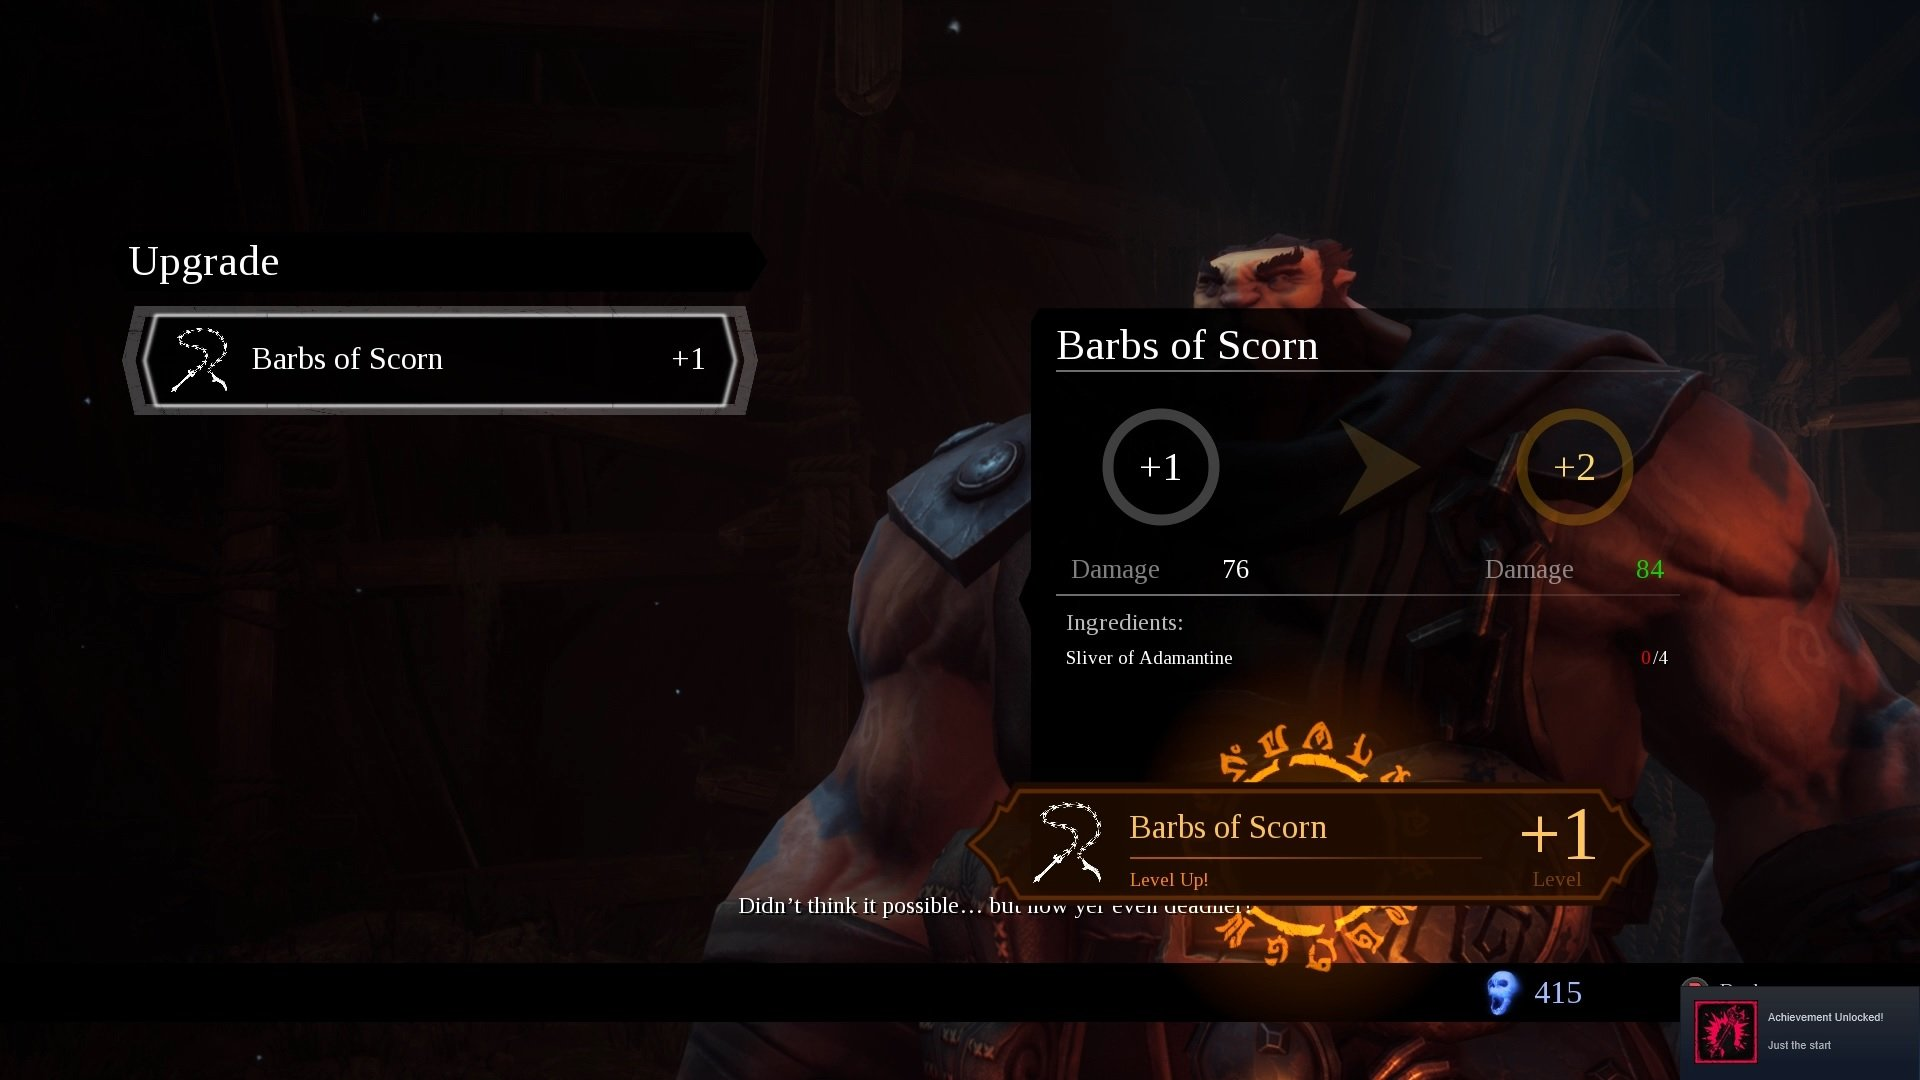 How to upgrade Weapons and Enhancements in Darksiders 3